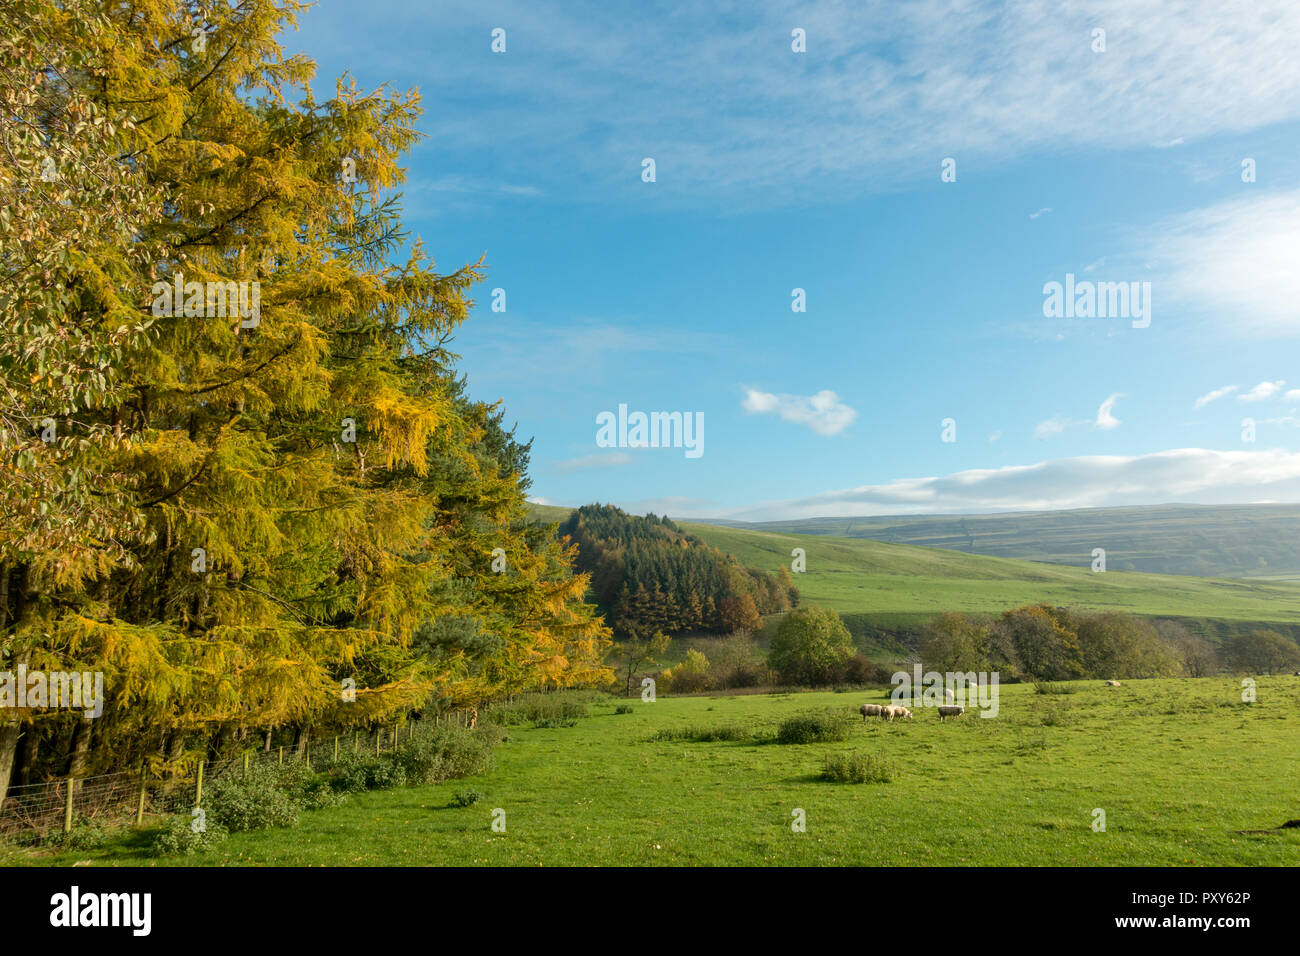 Larch trees in autumnal colour in Littondale looking towards Wharfedale, Yorshire Dales, UK - Stock Image